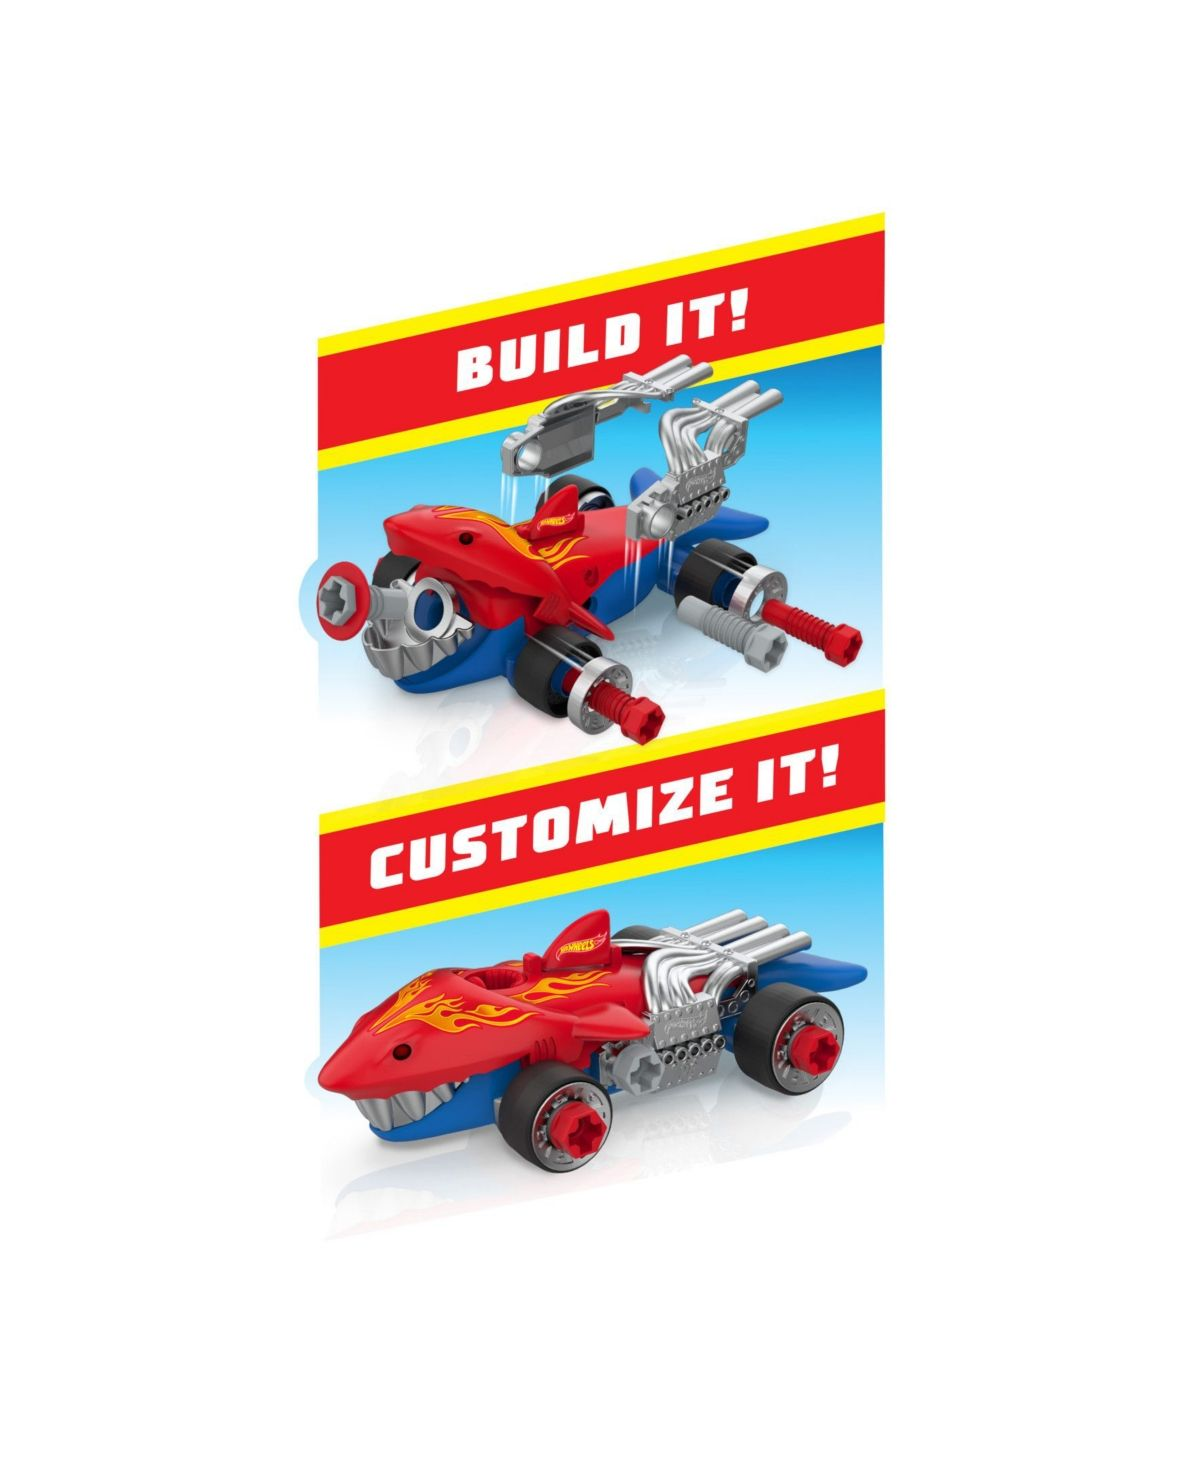 Ready, set, race kids will love getting creative by customizing their own winning race car with the hot wheels engines go tool kit. This set is packed with 29 play tools and parts that allow kids to build, tune, and customize their very own hot wheels race car.